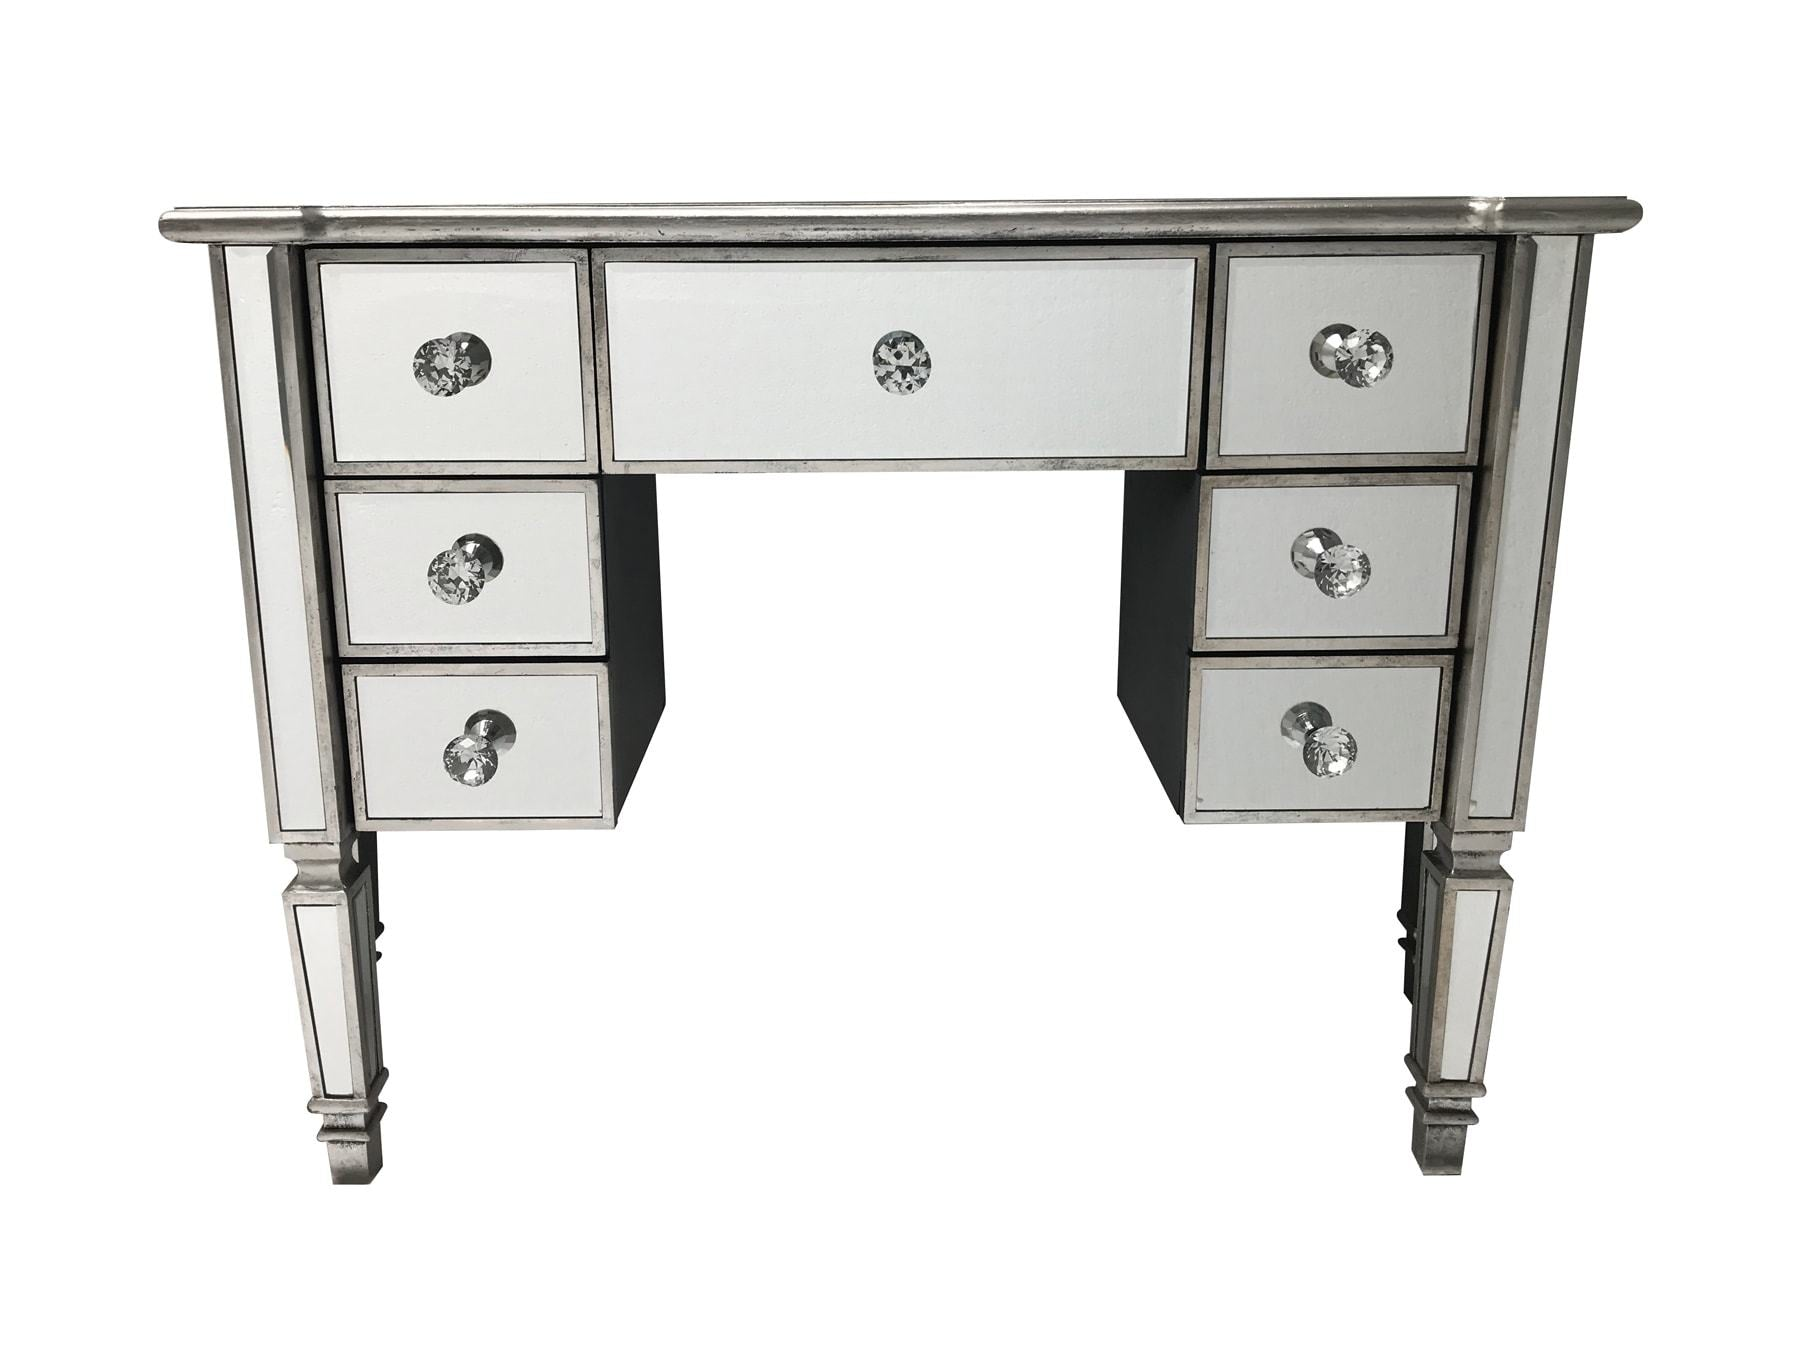 Mirrored dressing table with seven drawers, front view